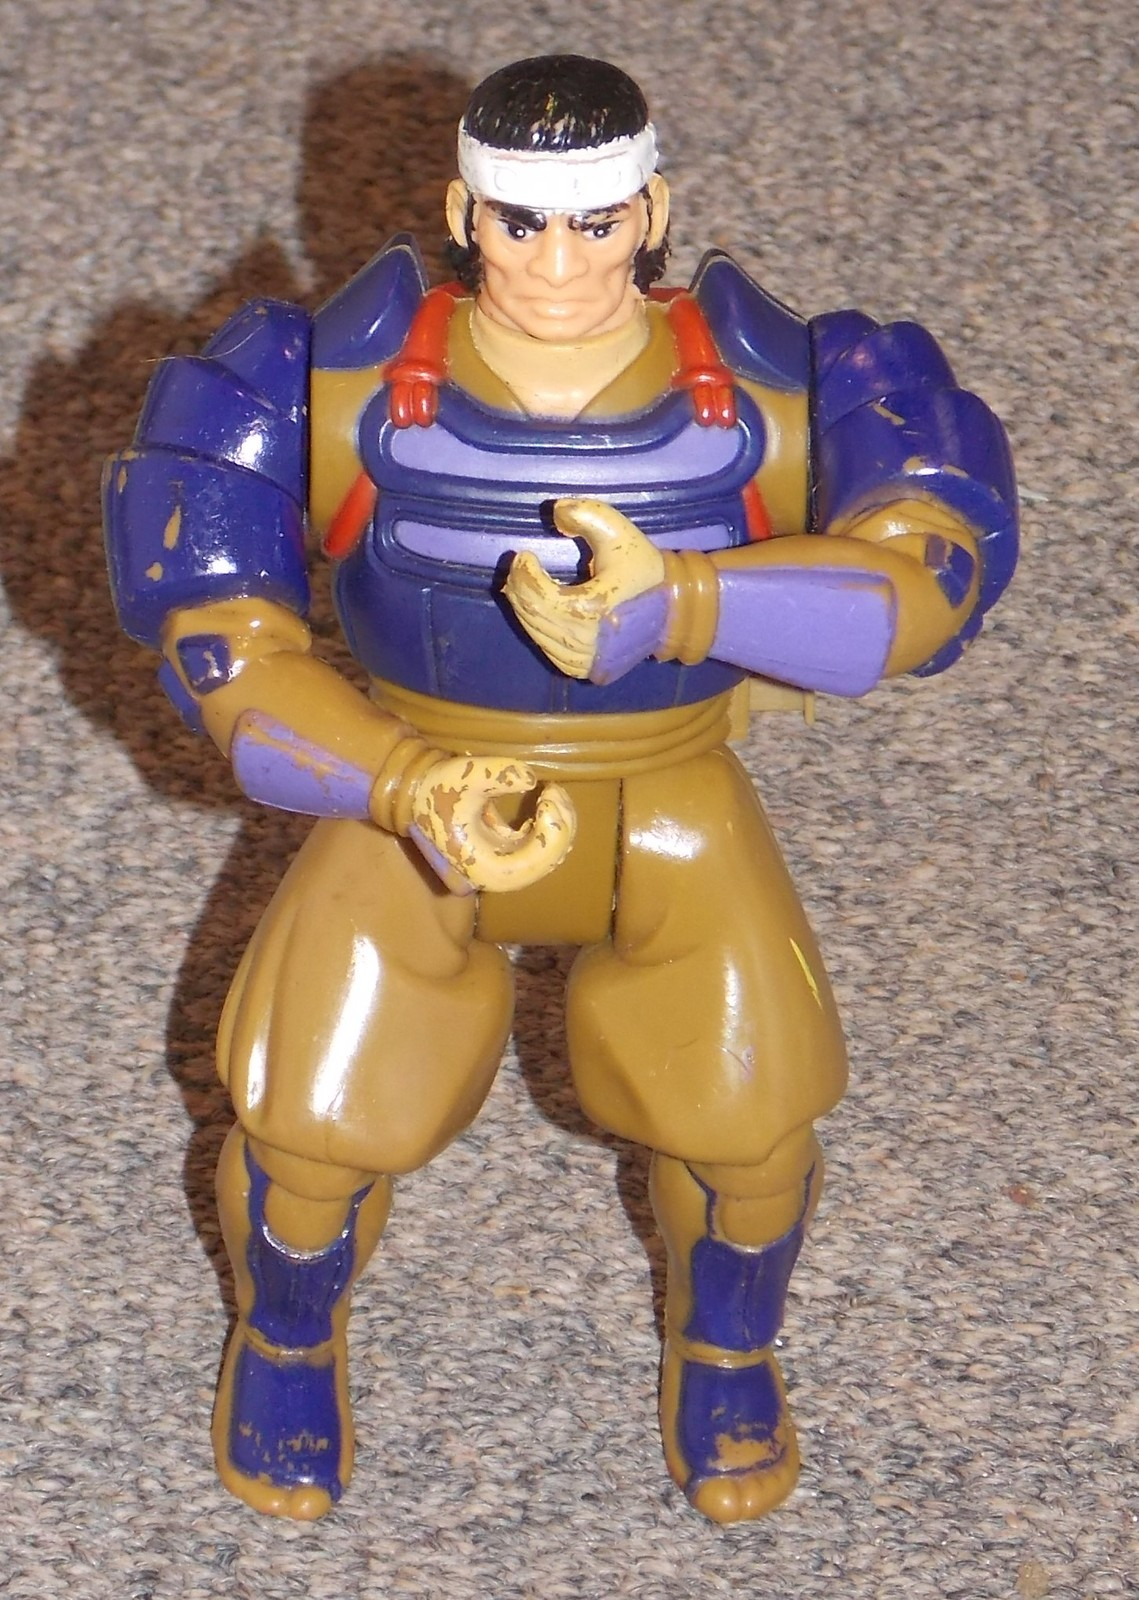 Primary image for Vintage 1985 LJN Thundercats Hachiman Samurai 6 inch Action Figure